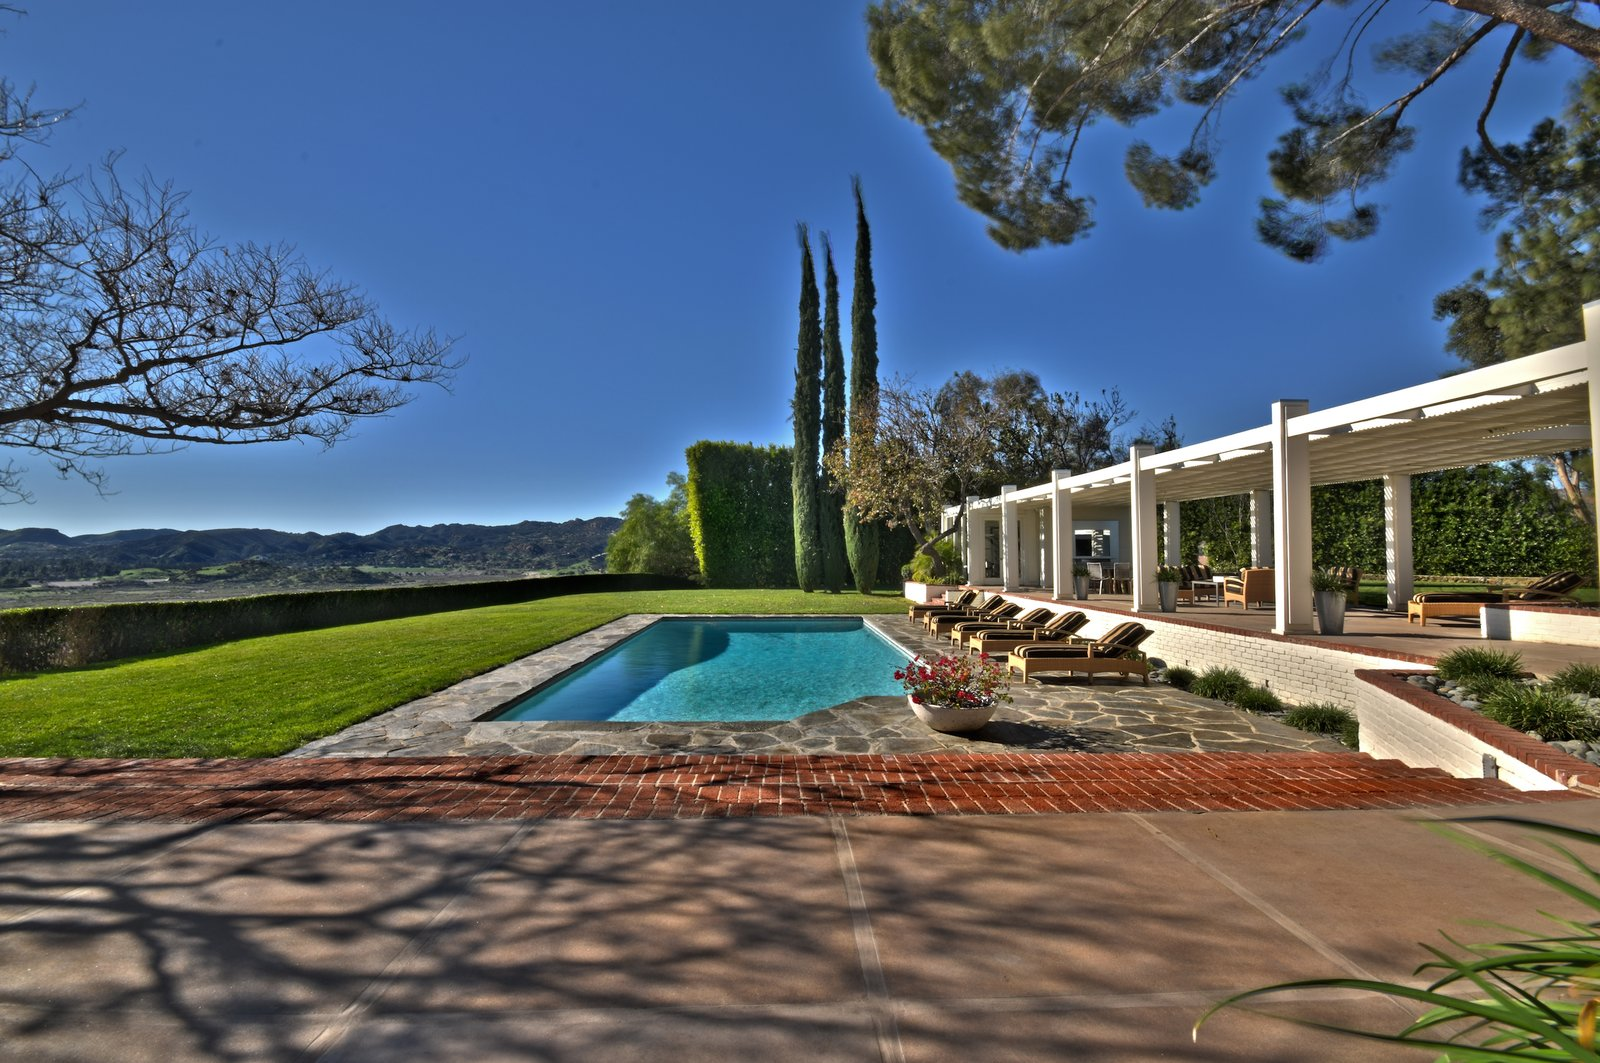 Byrdview Frank Sinatra estate pool with terrace